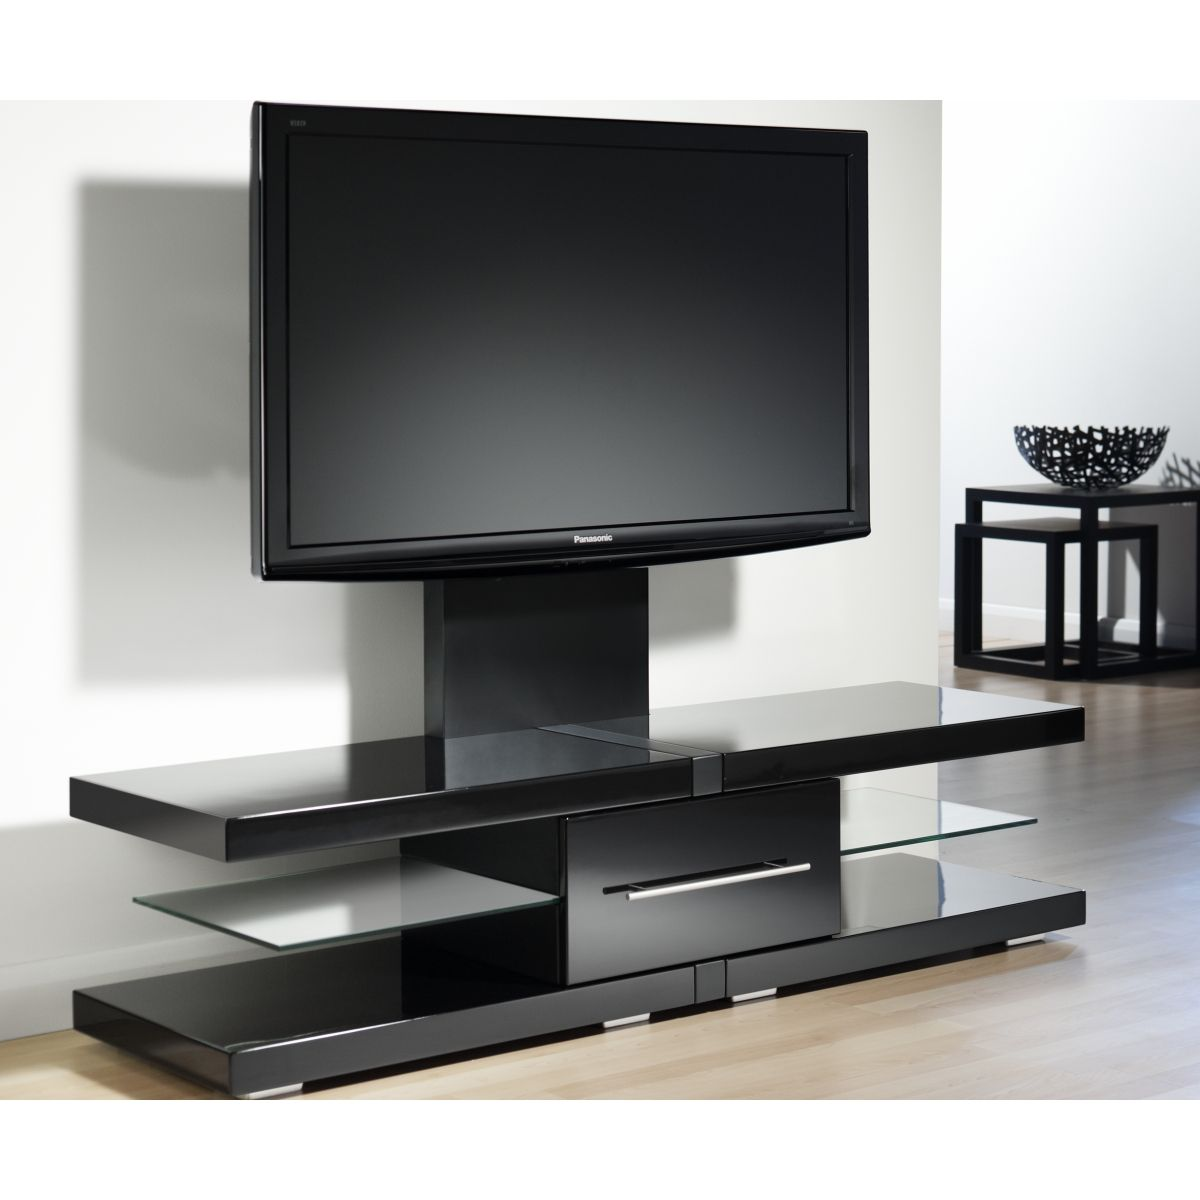 Effigy of Cool Flat Screen TV Stands With Mount